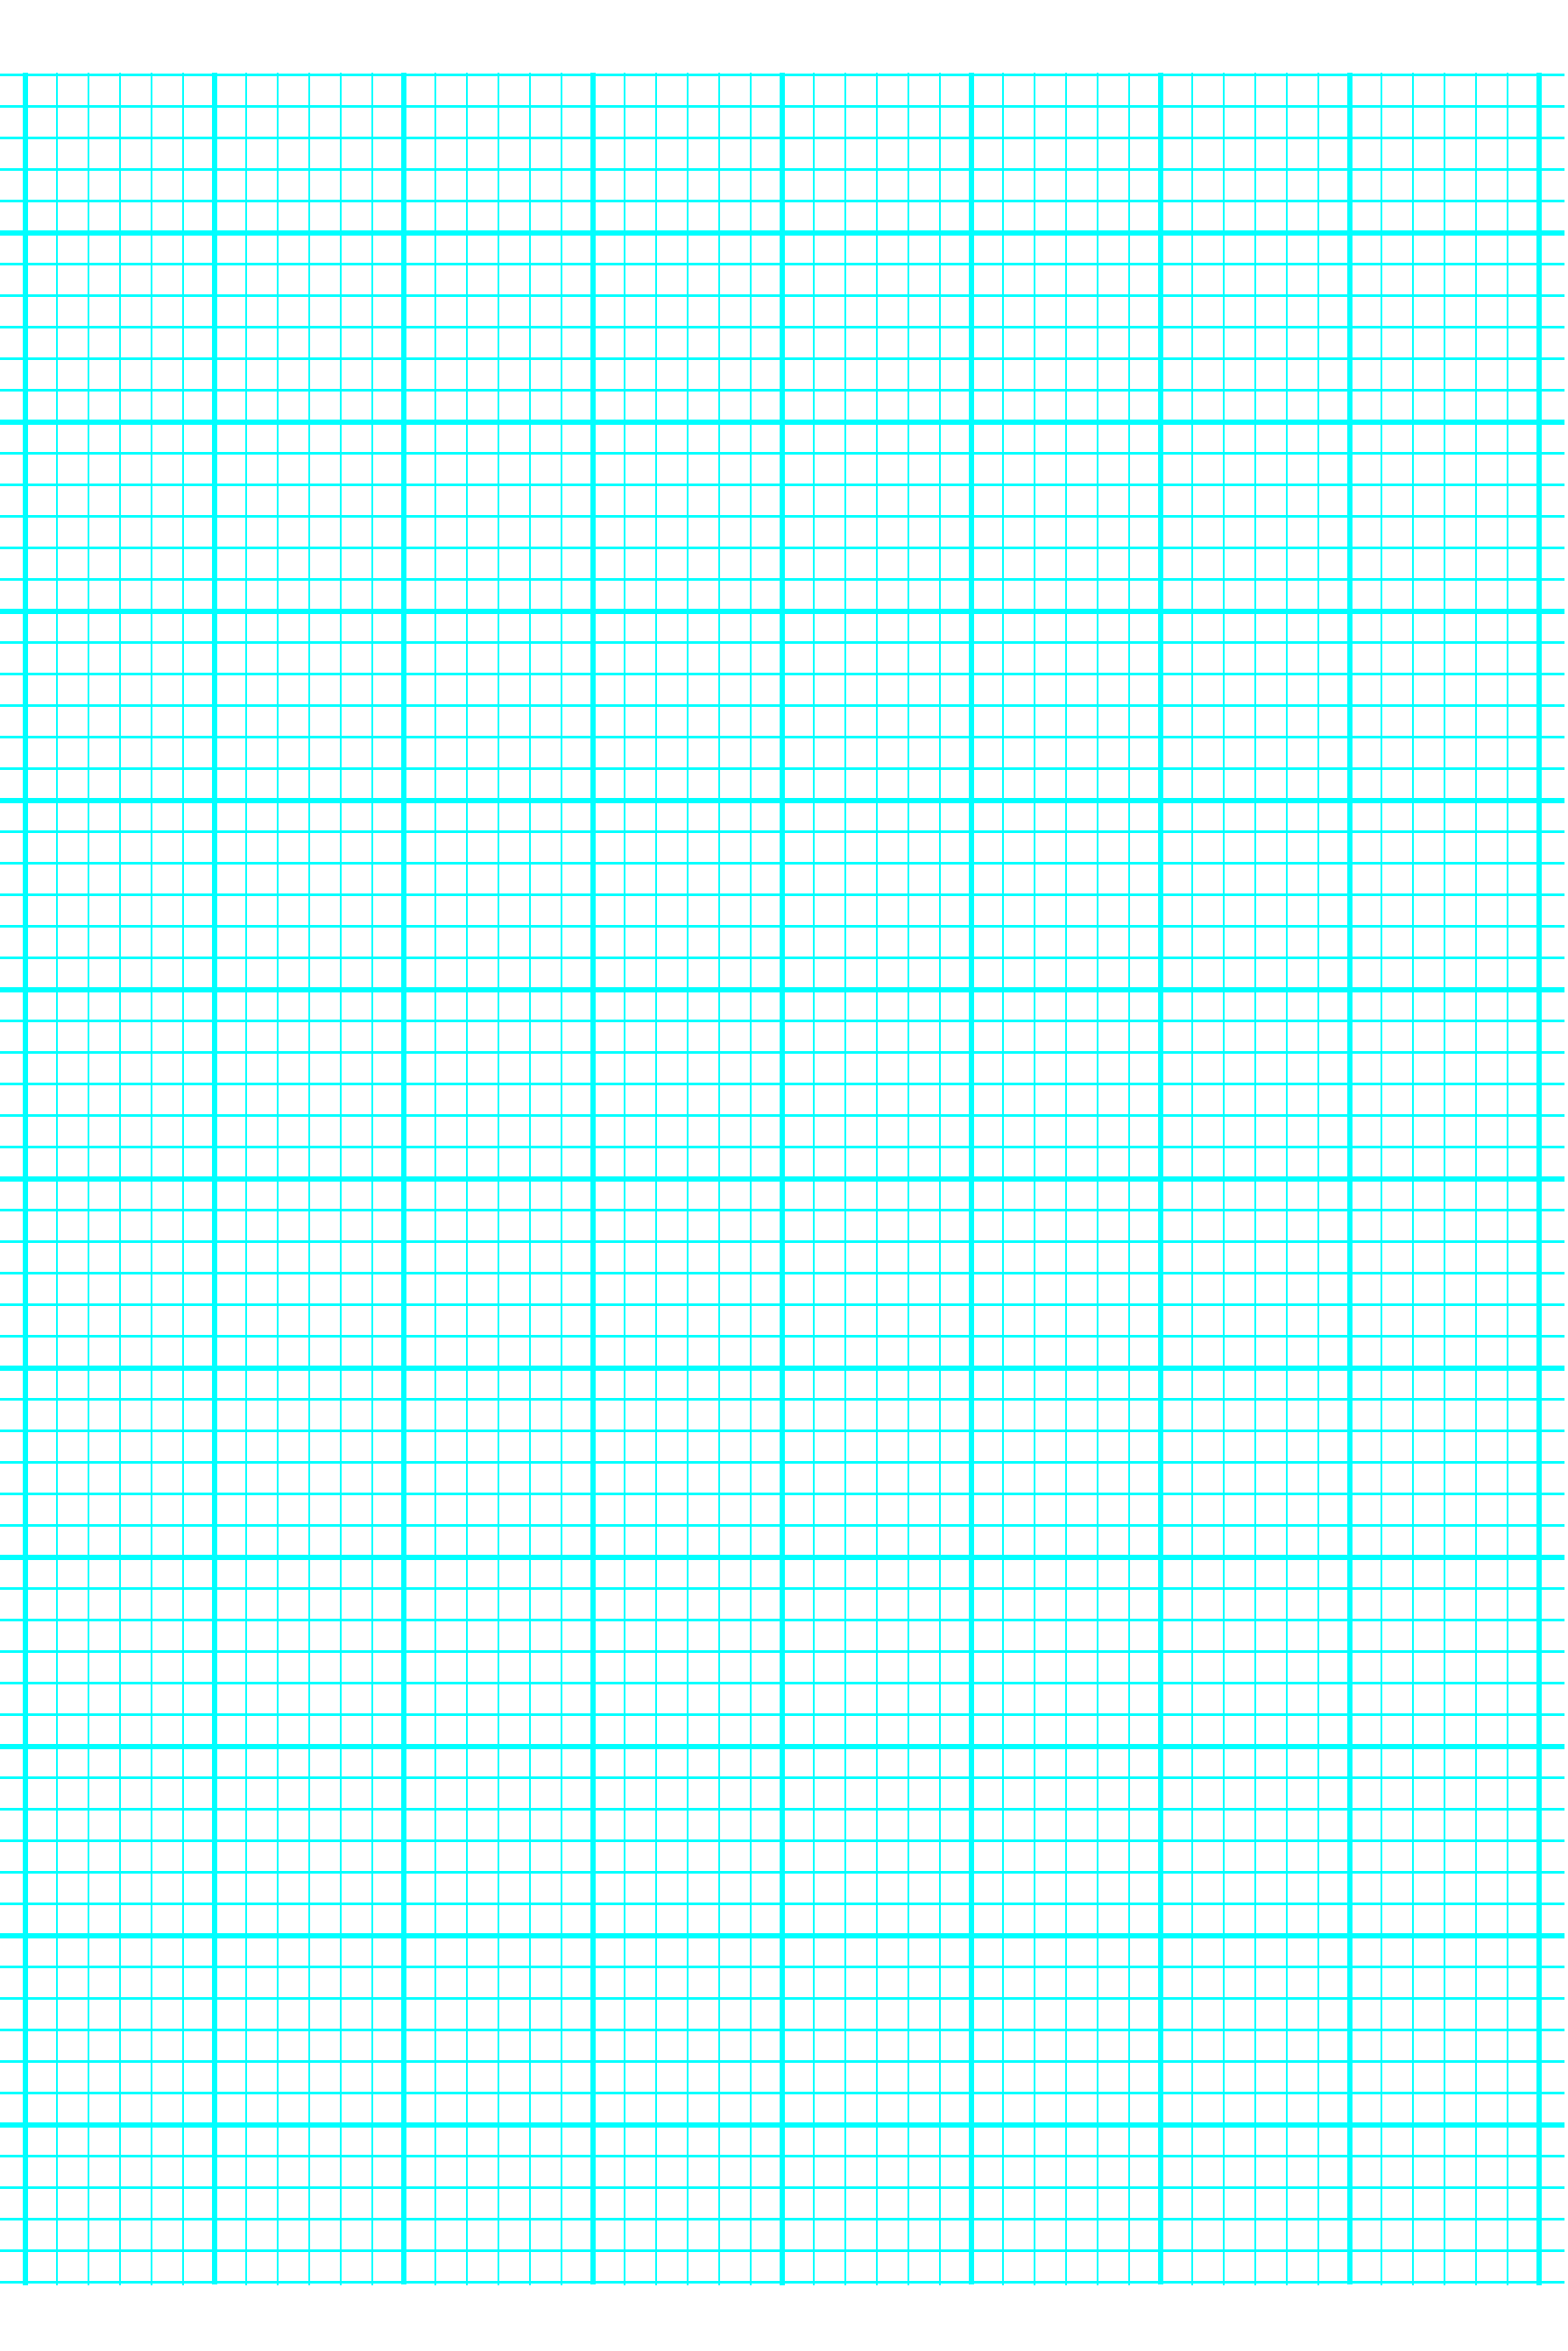 6 Lines per Inch Graph Paper on A4sized Paper  Heavy